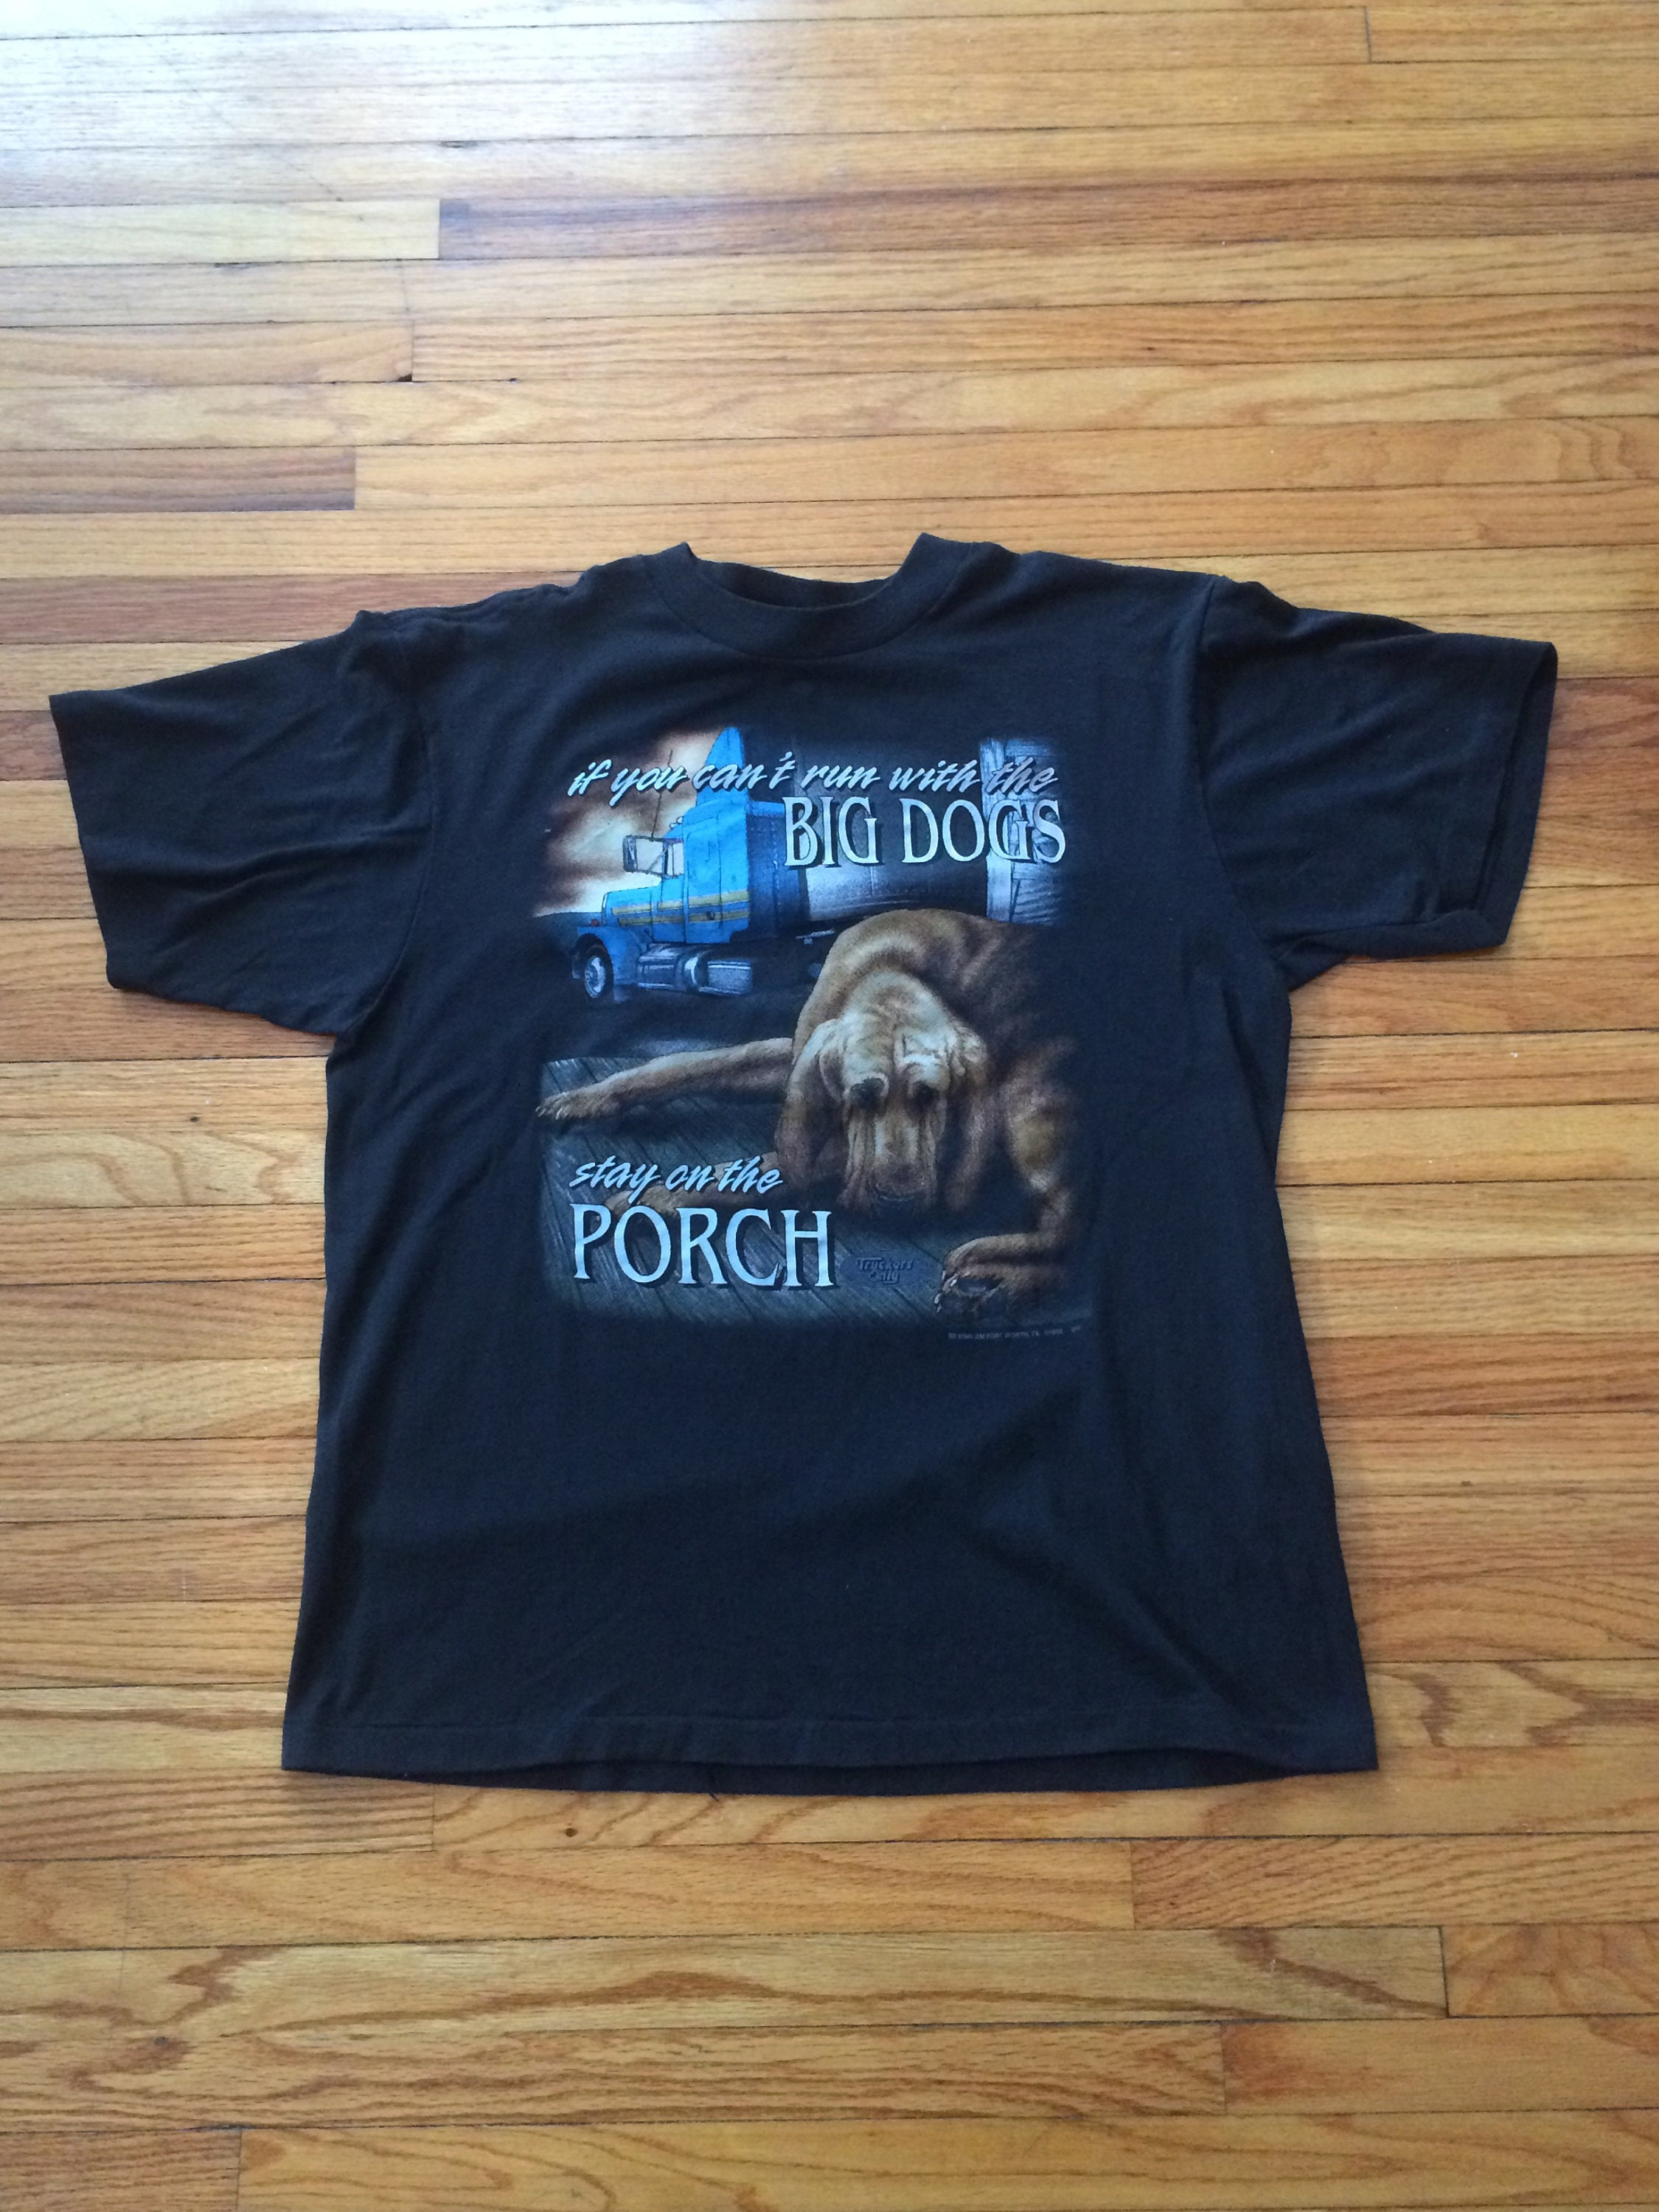 80s Biker T Shirt If You Cant Run With The Big Dogs Stay On The Poarch Motorcycle Sleeveless T Shirt nBT79CbpdT